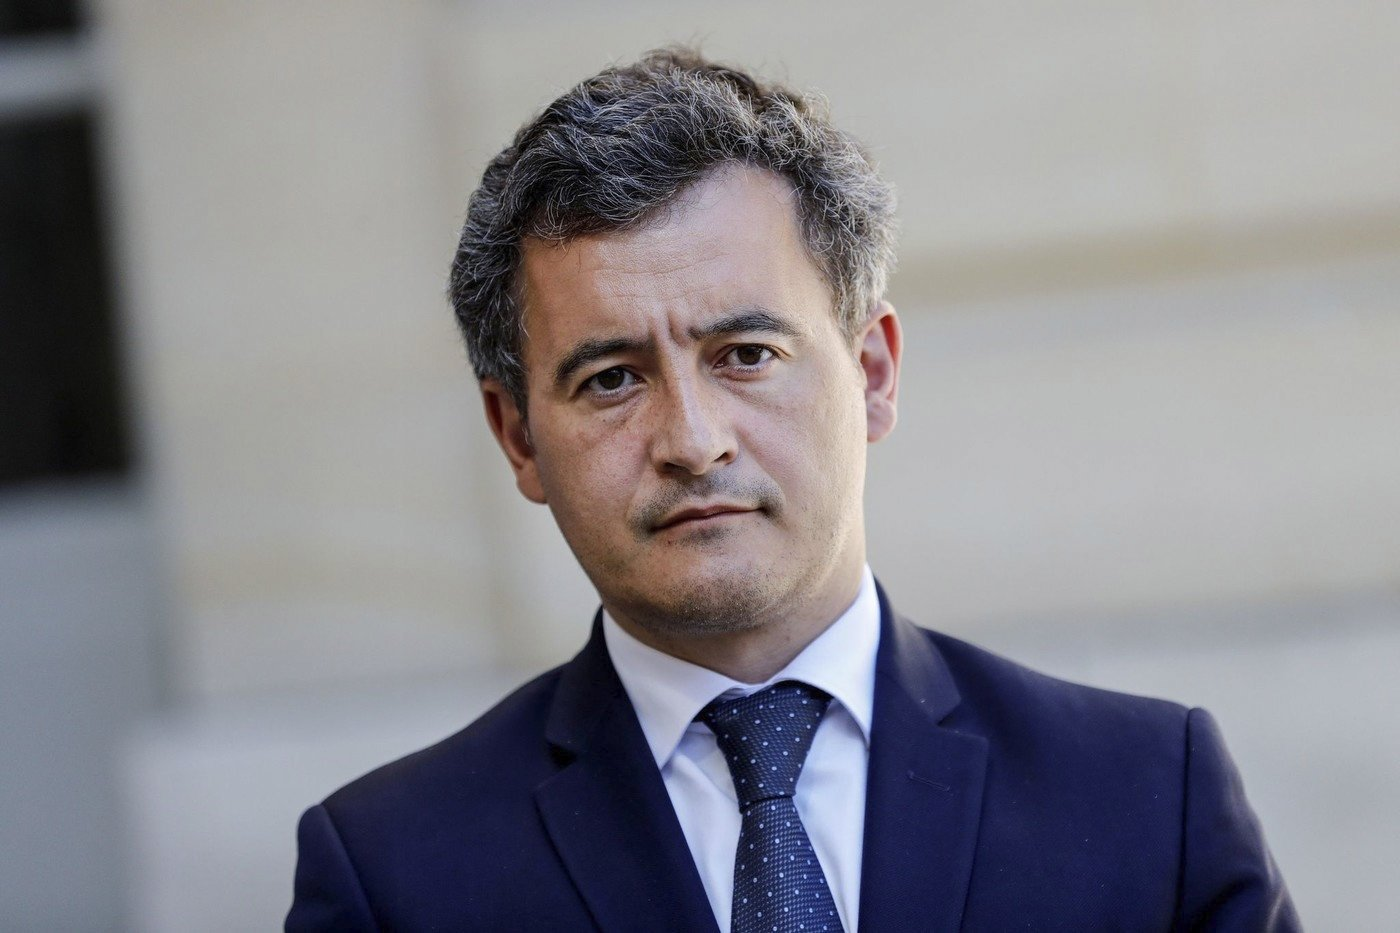 French Interior Minister Gerald Darmanin looks on as the French Prime Minister speaks to the press after a videoconference meeting on emergency measures regarding local authorities finances at the Hotel Matignon, Paris, France, May 29, 2020. (AFP Photo)